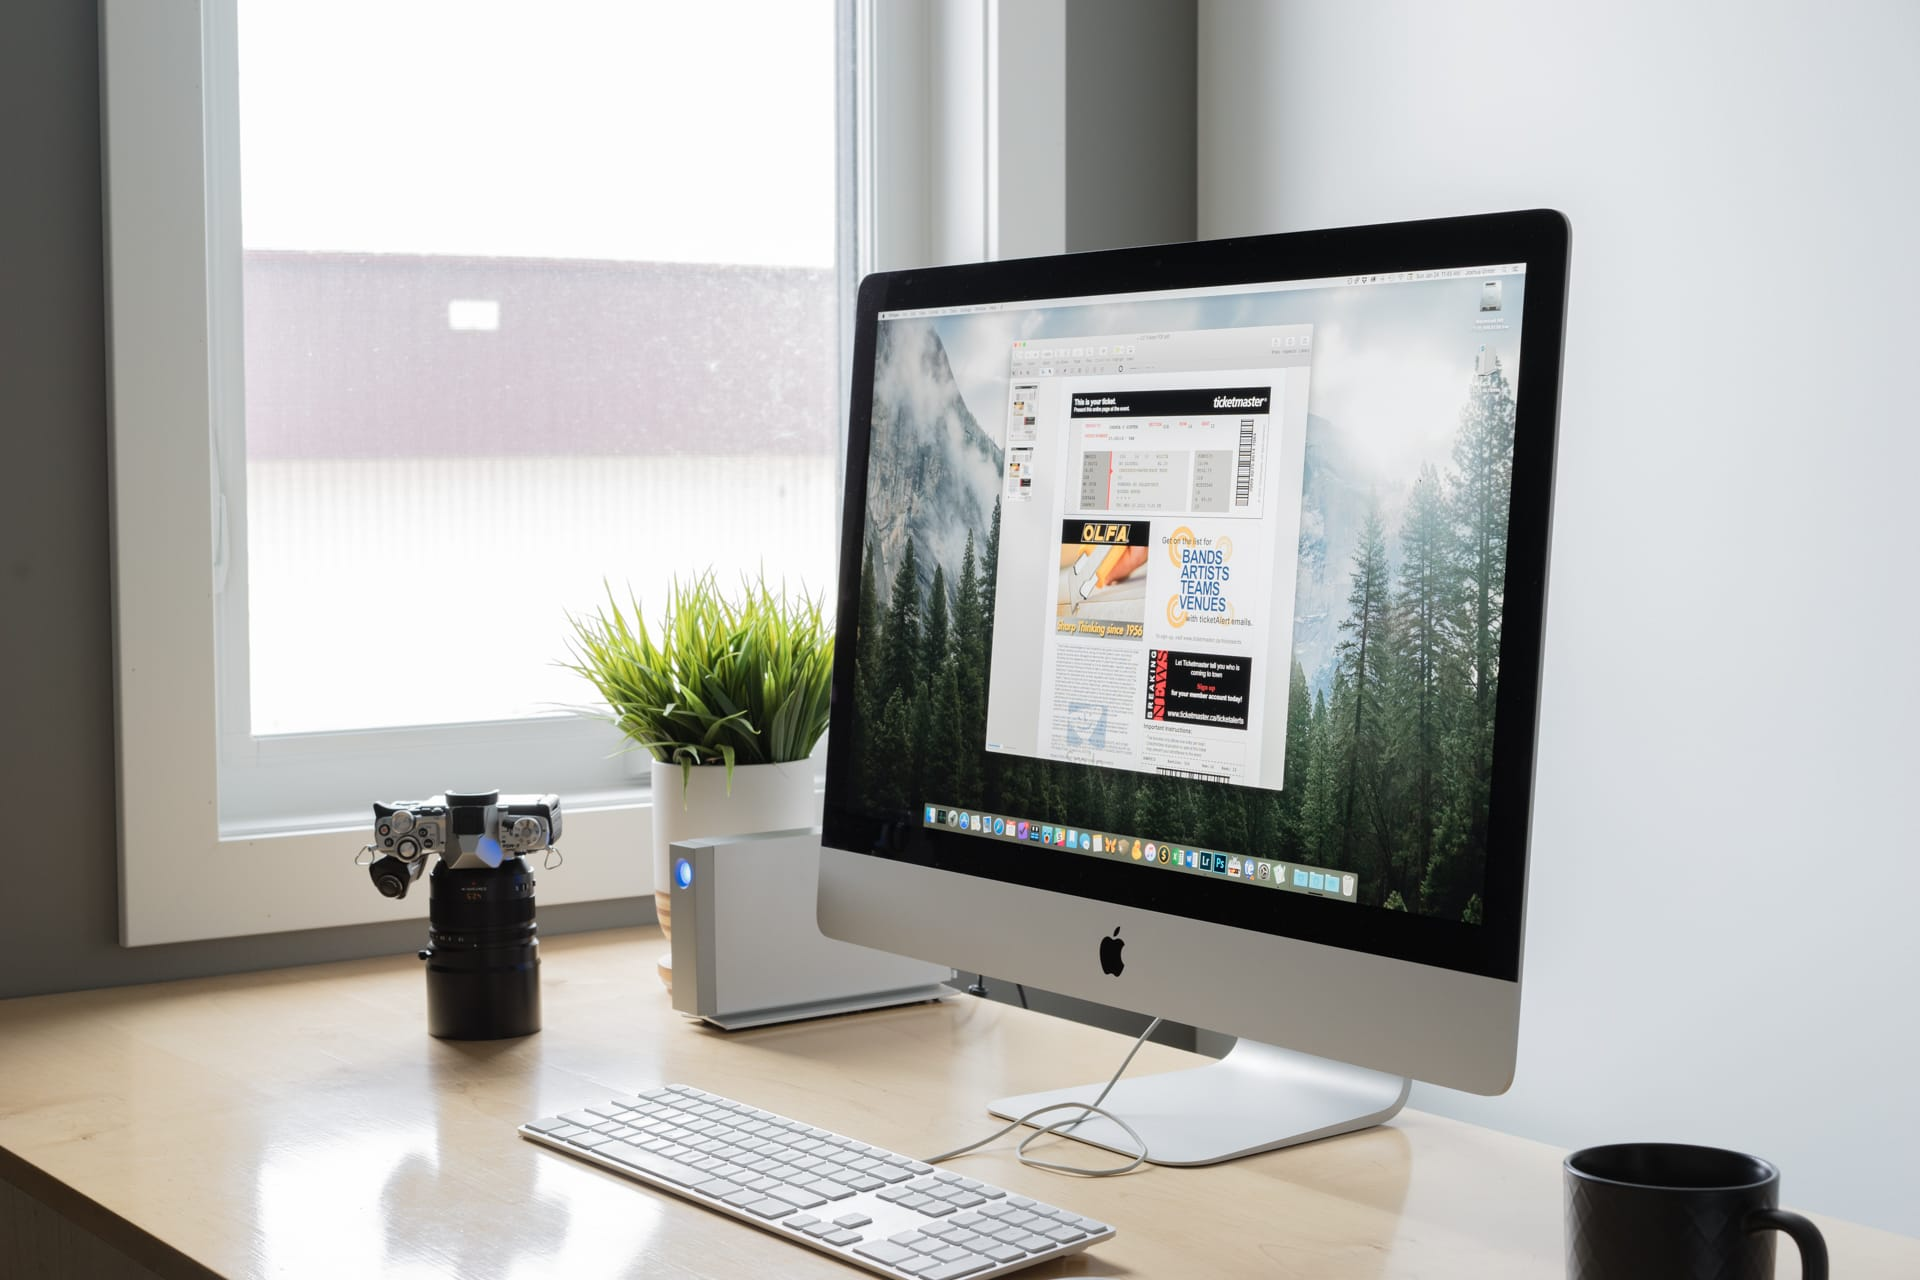 How To Make More Room On Imac